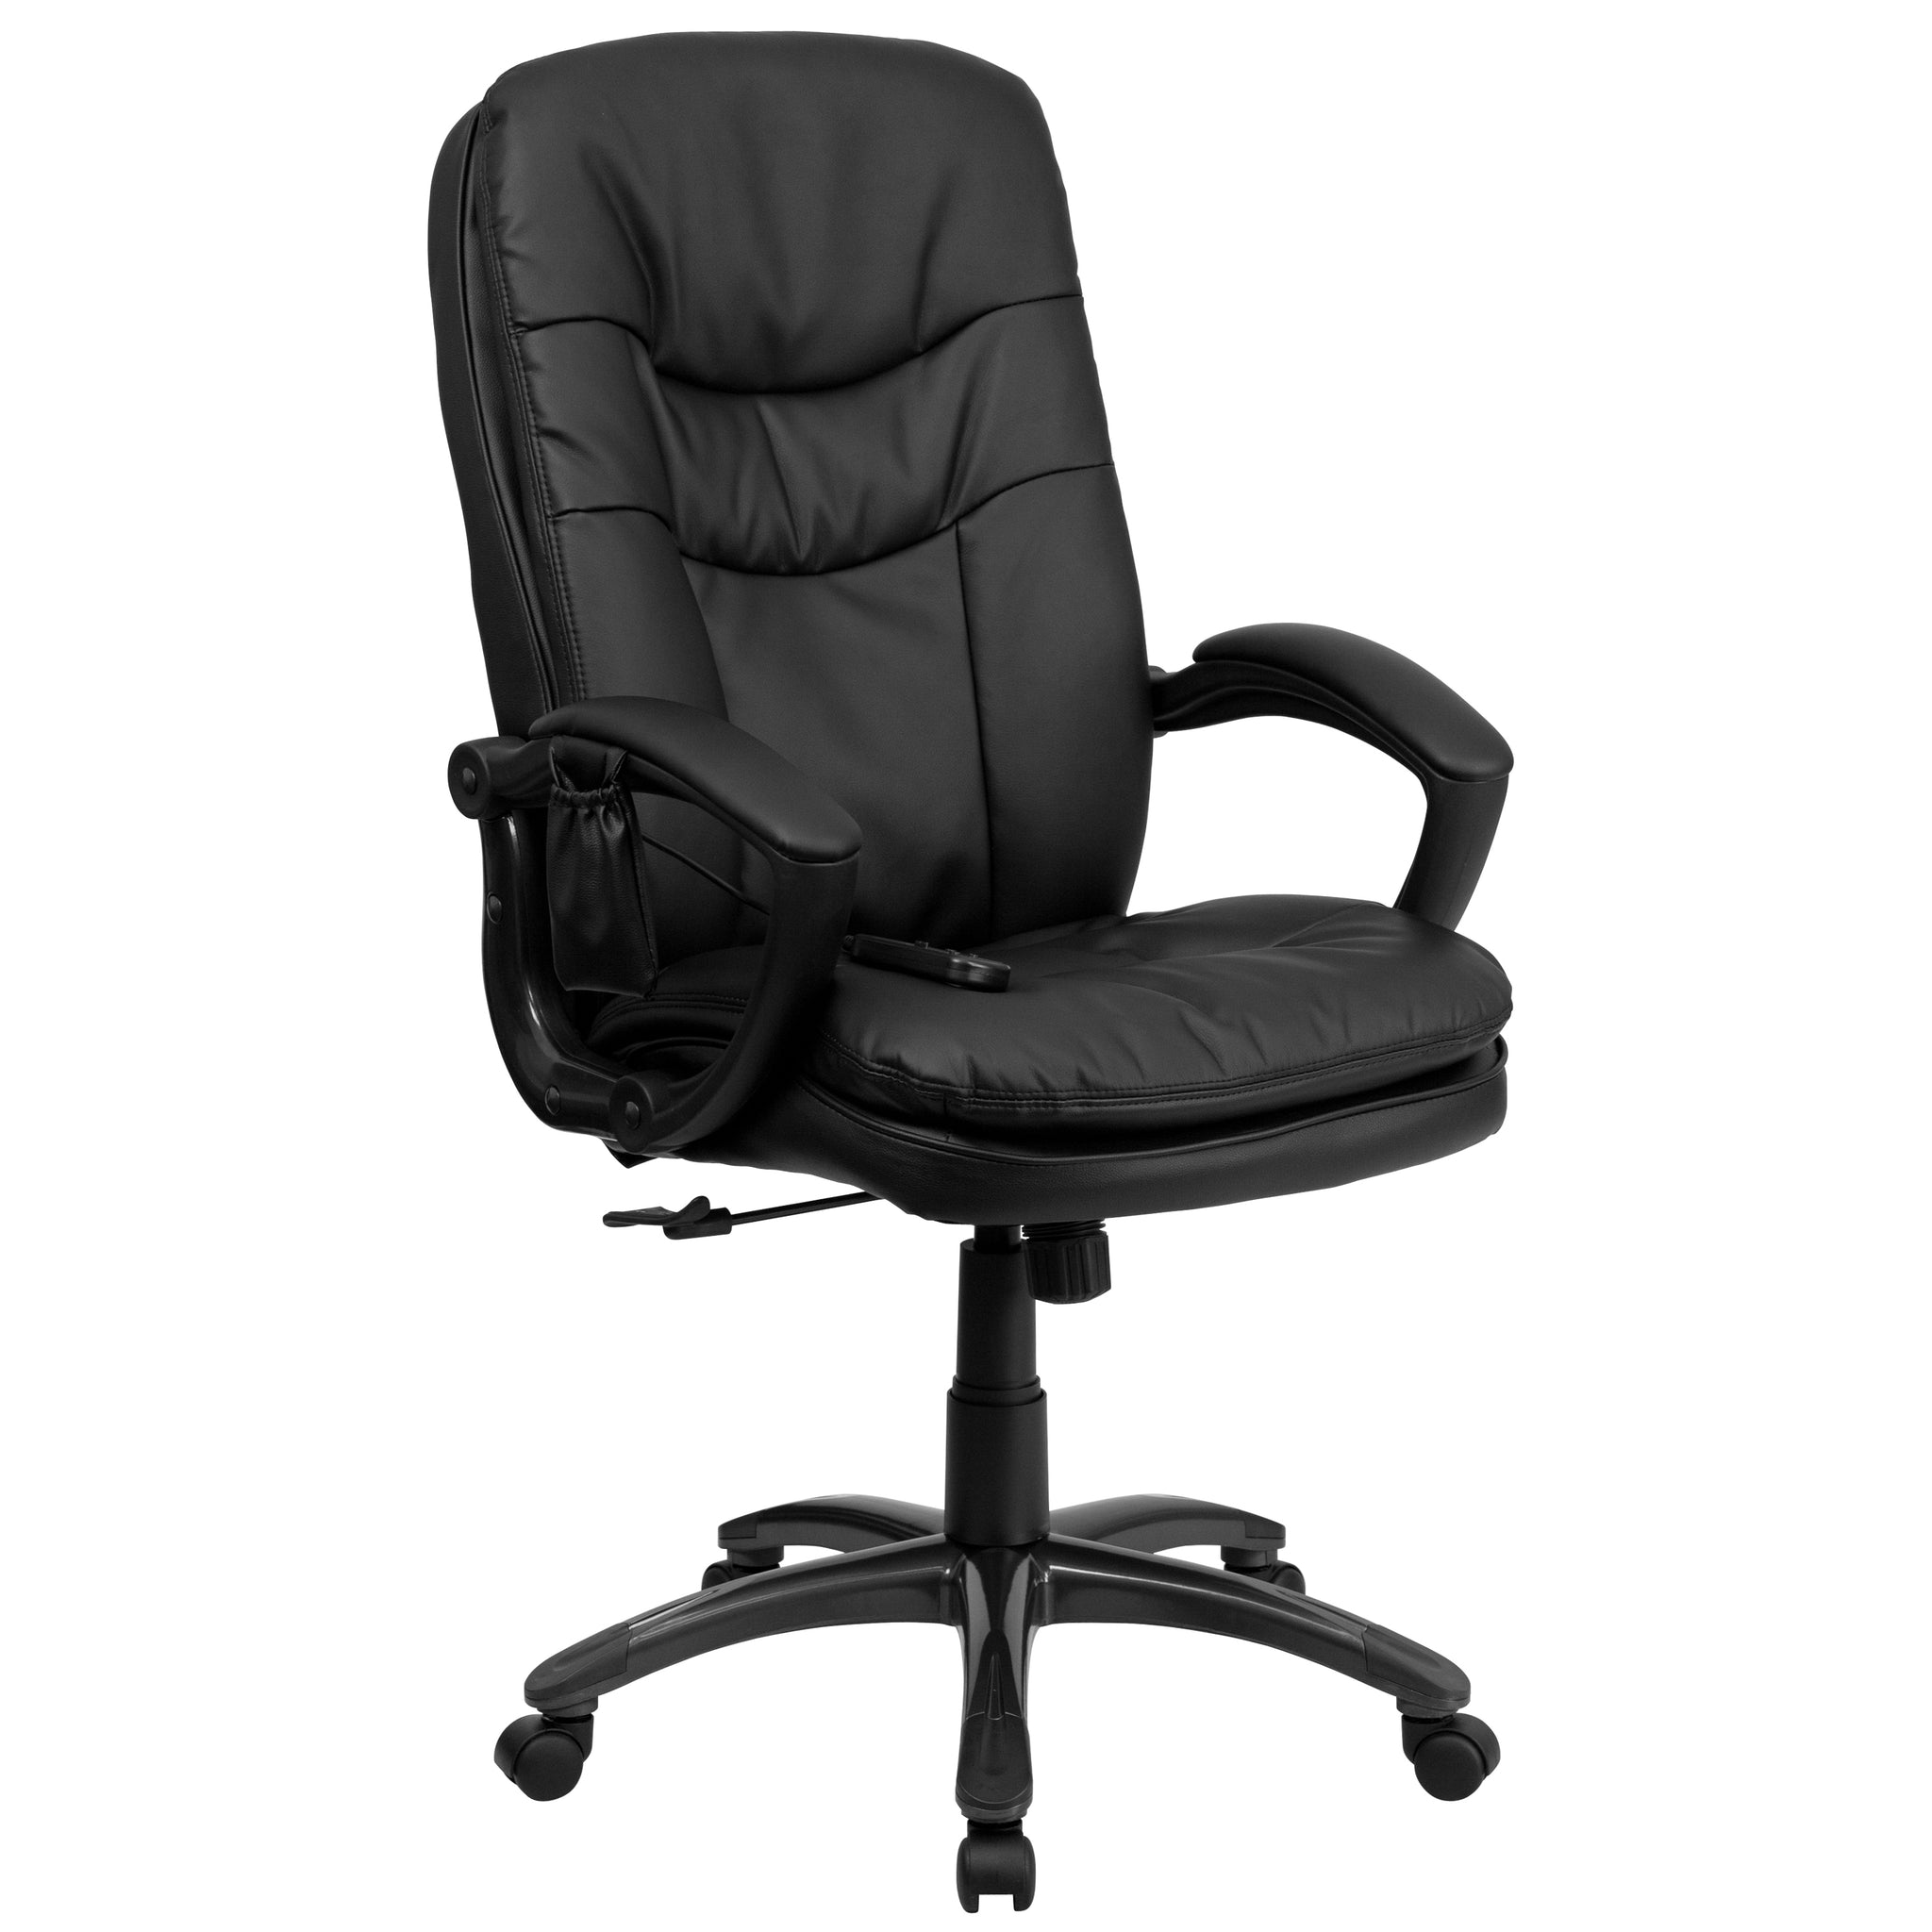 High Back Massaging Leather Executive Swivel Office Chair: Black